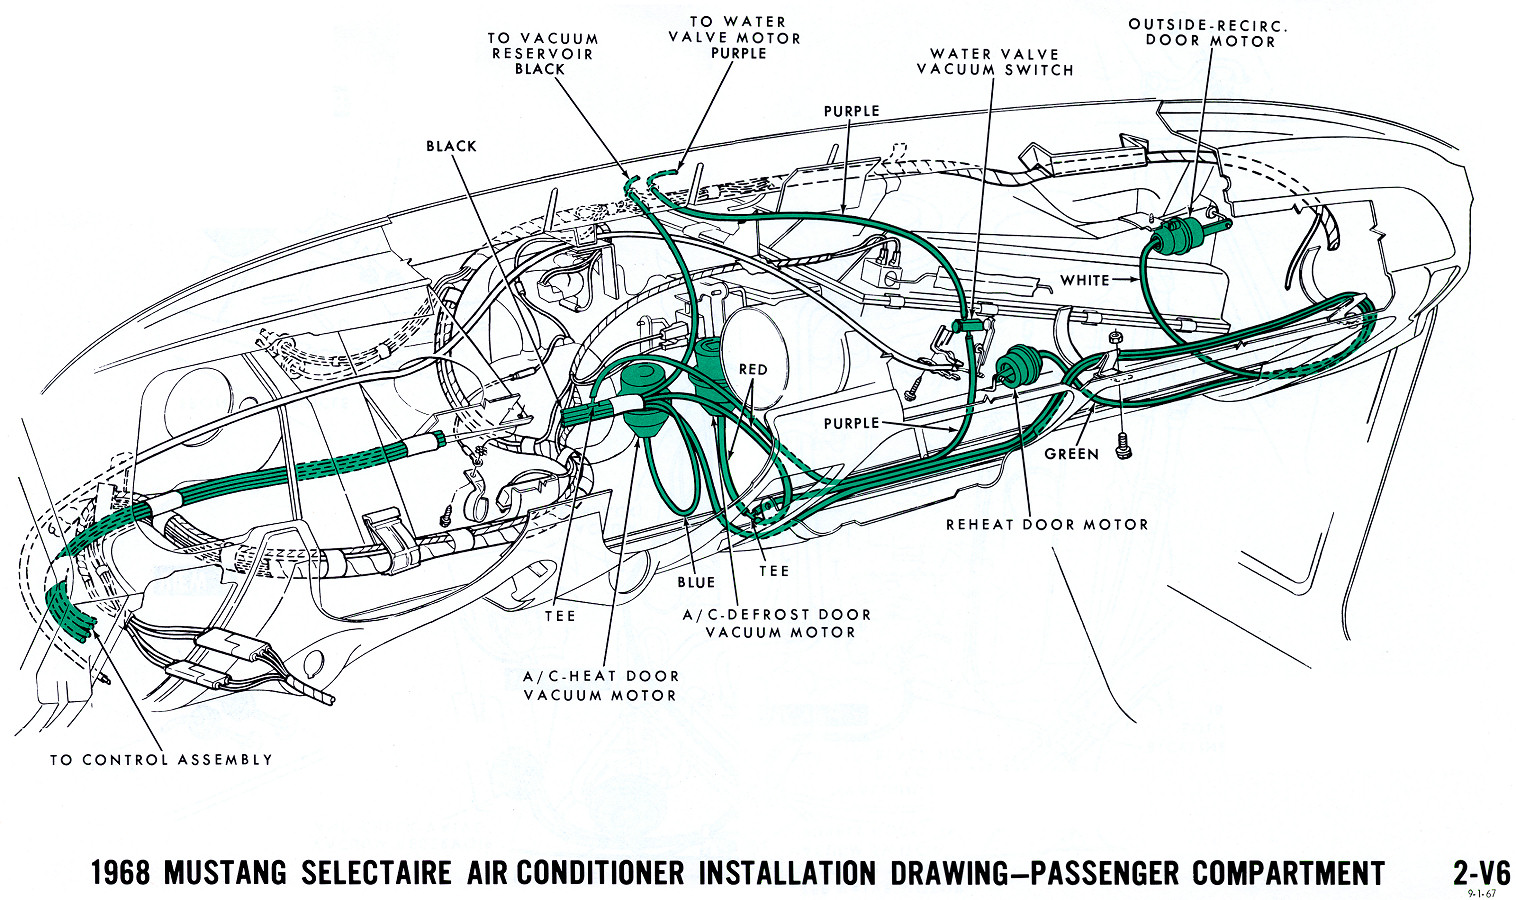 1968 Mustang Wiring Diagrams And Vacuum Schematics Average Joe 1985 Corvette Headlight Diagram Air Conditioning Interior